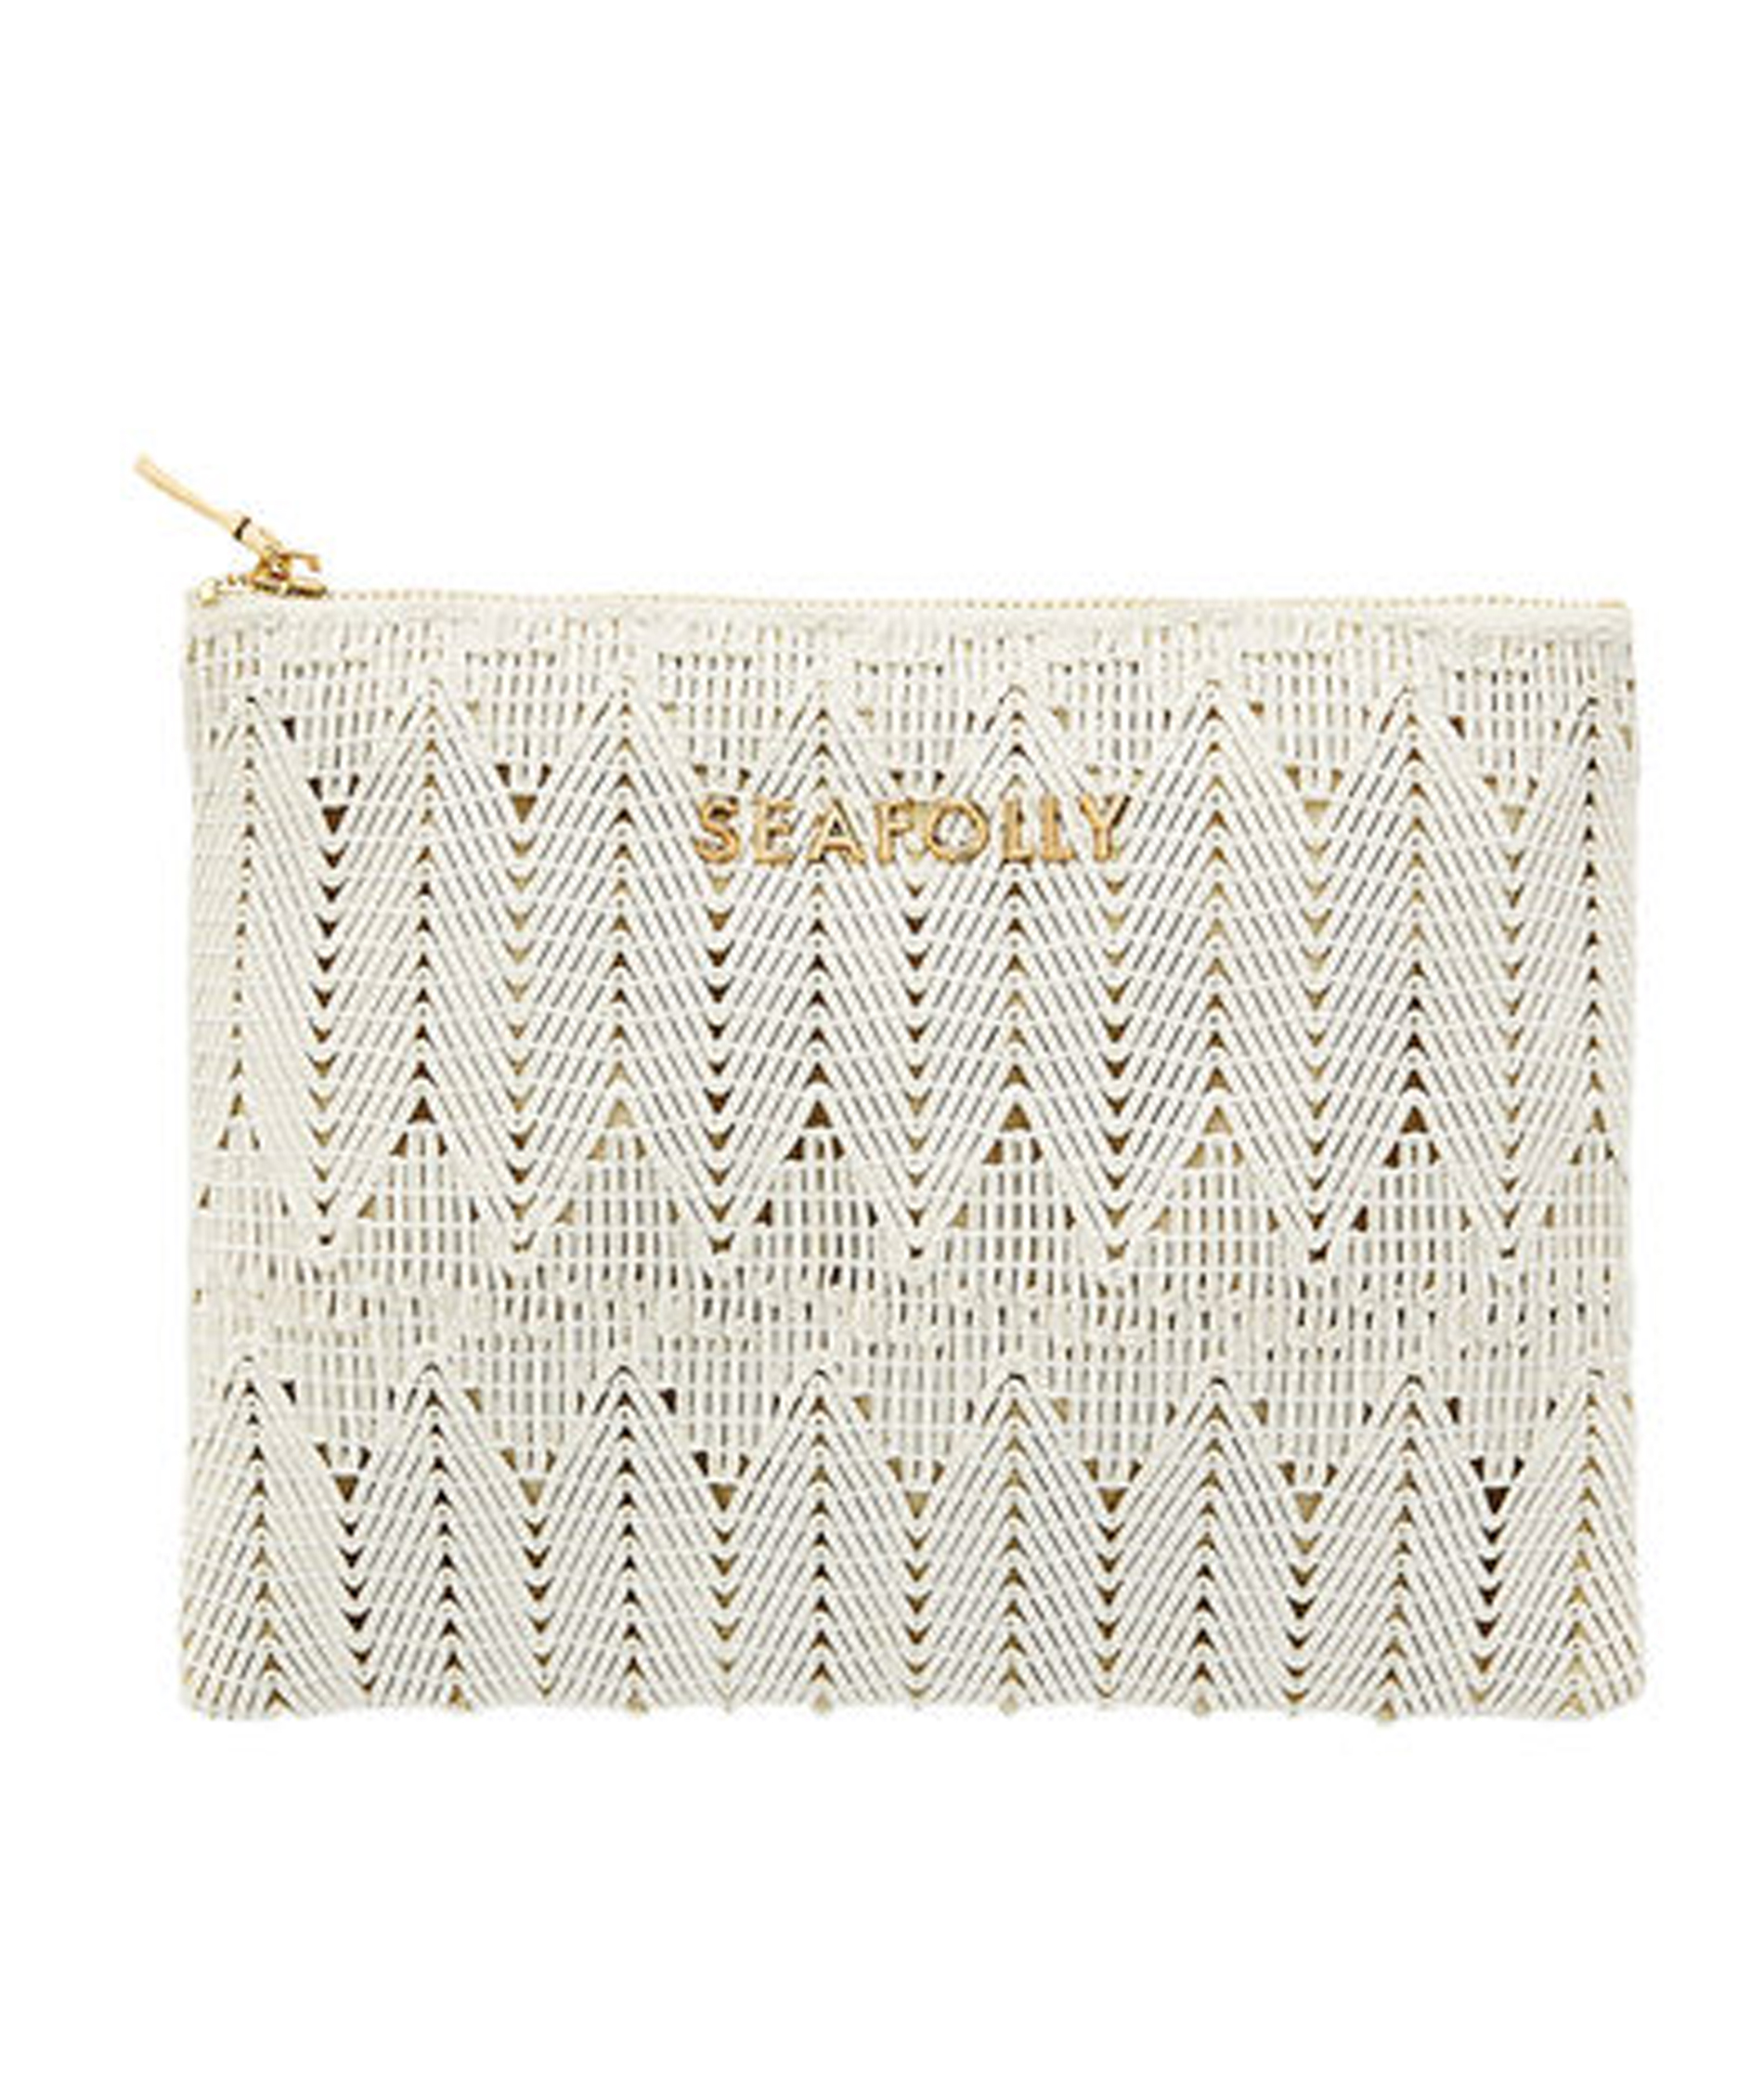 Seafolly Golden Clutch Bag - White